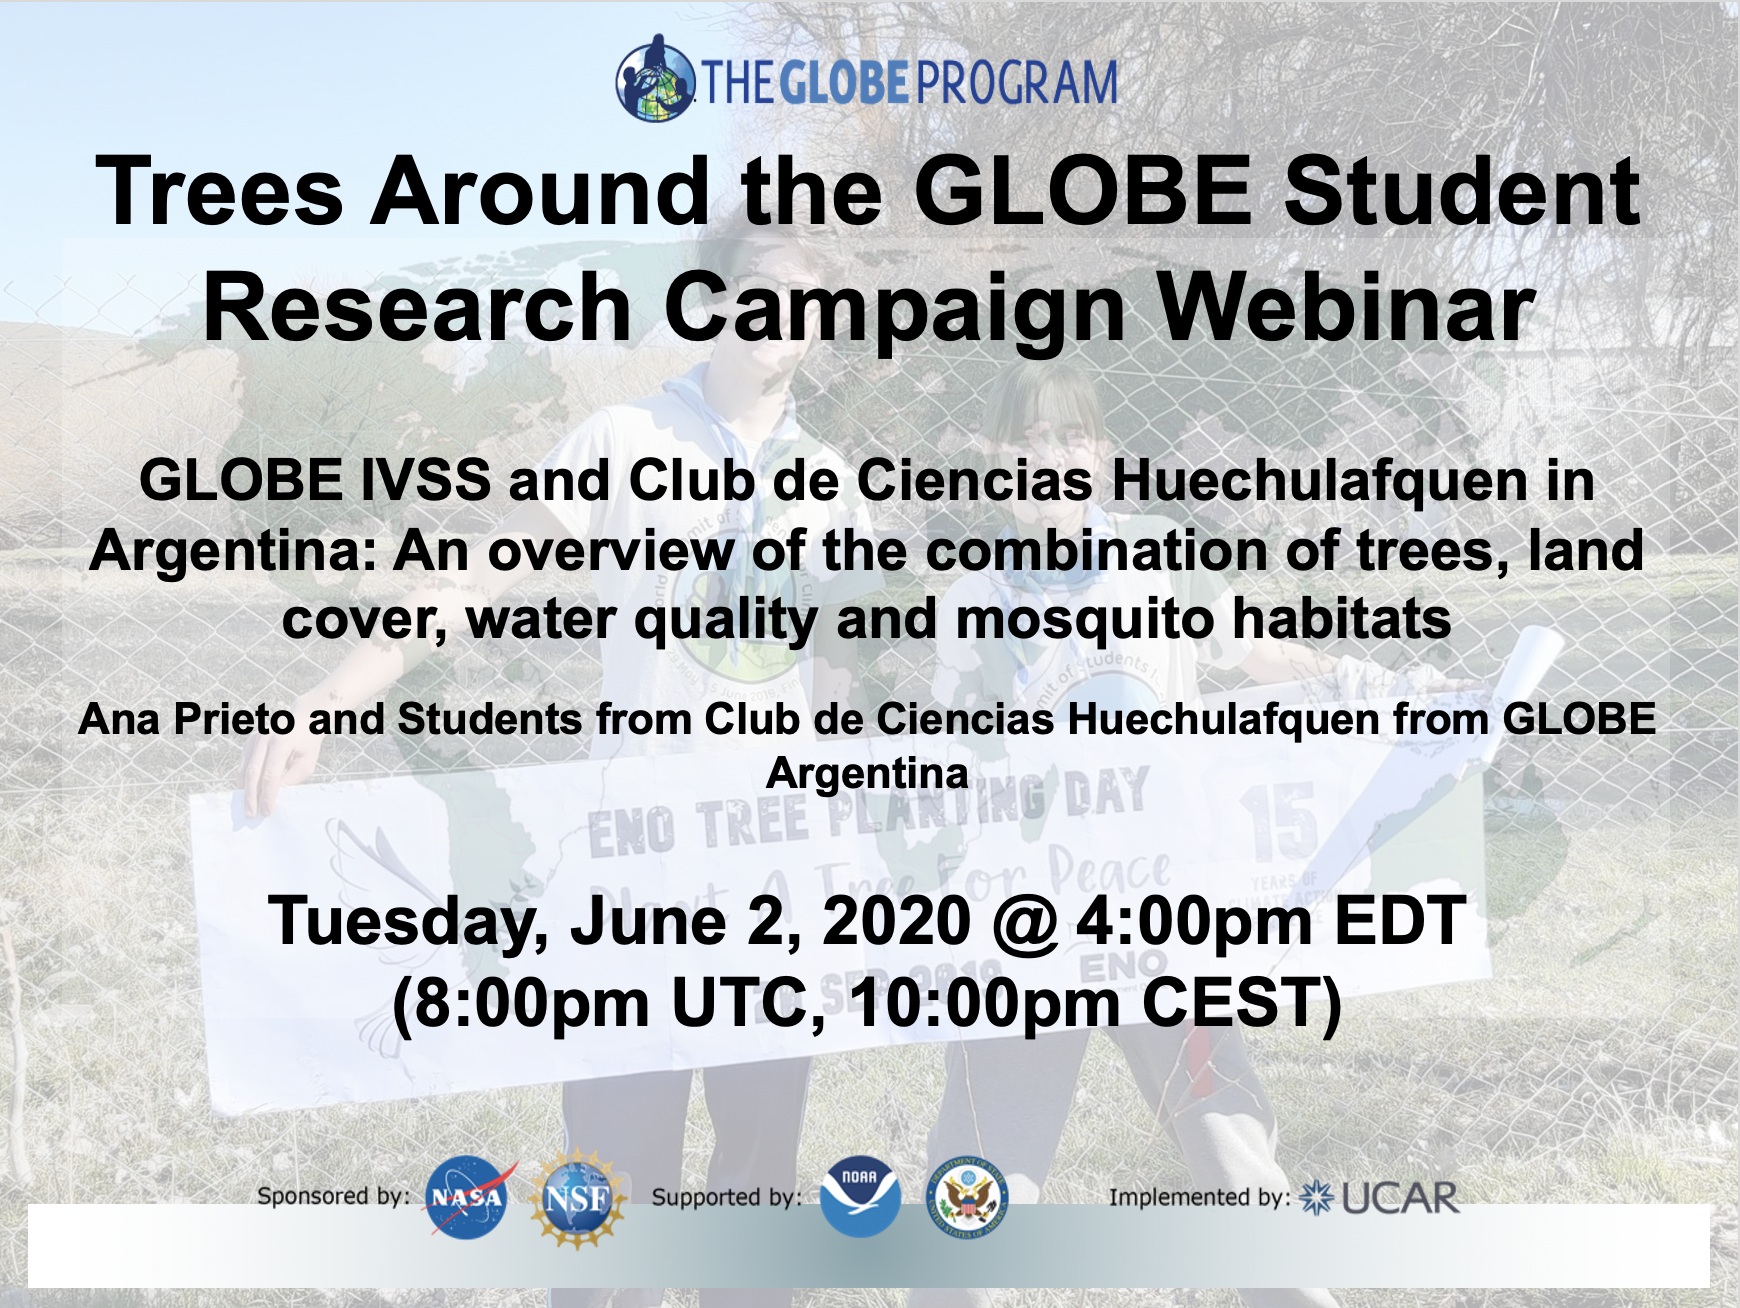 Trees Around the GLOBE Student Research Campaign webinar 02 June shareable